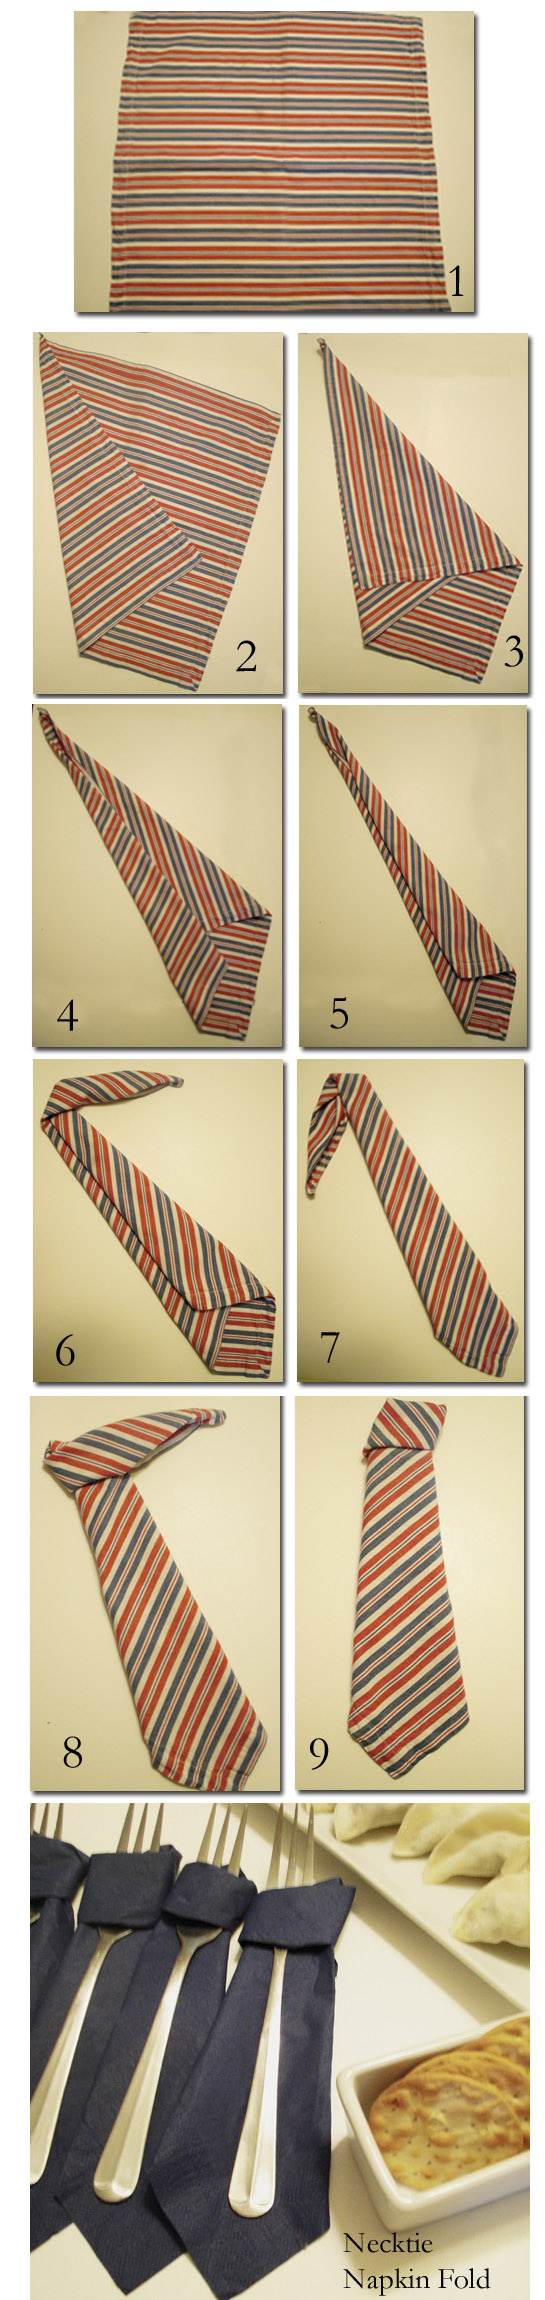 AD-Napkin-Folding-Techniques-That-Will-Transform-Your-Dinner-Table-28